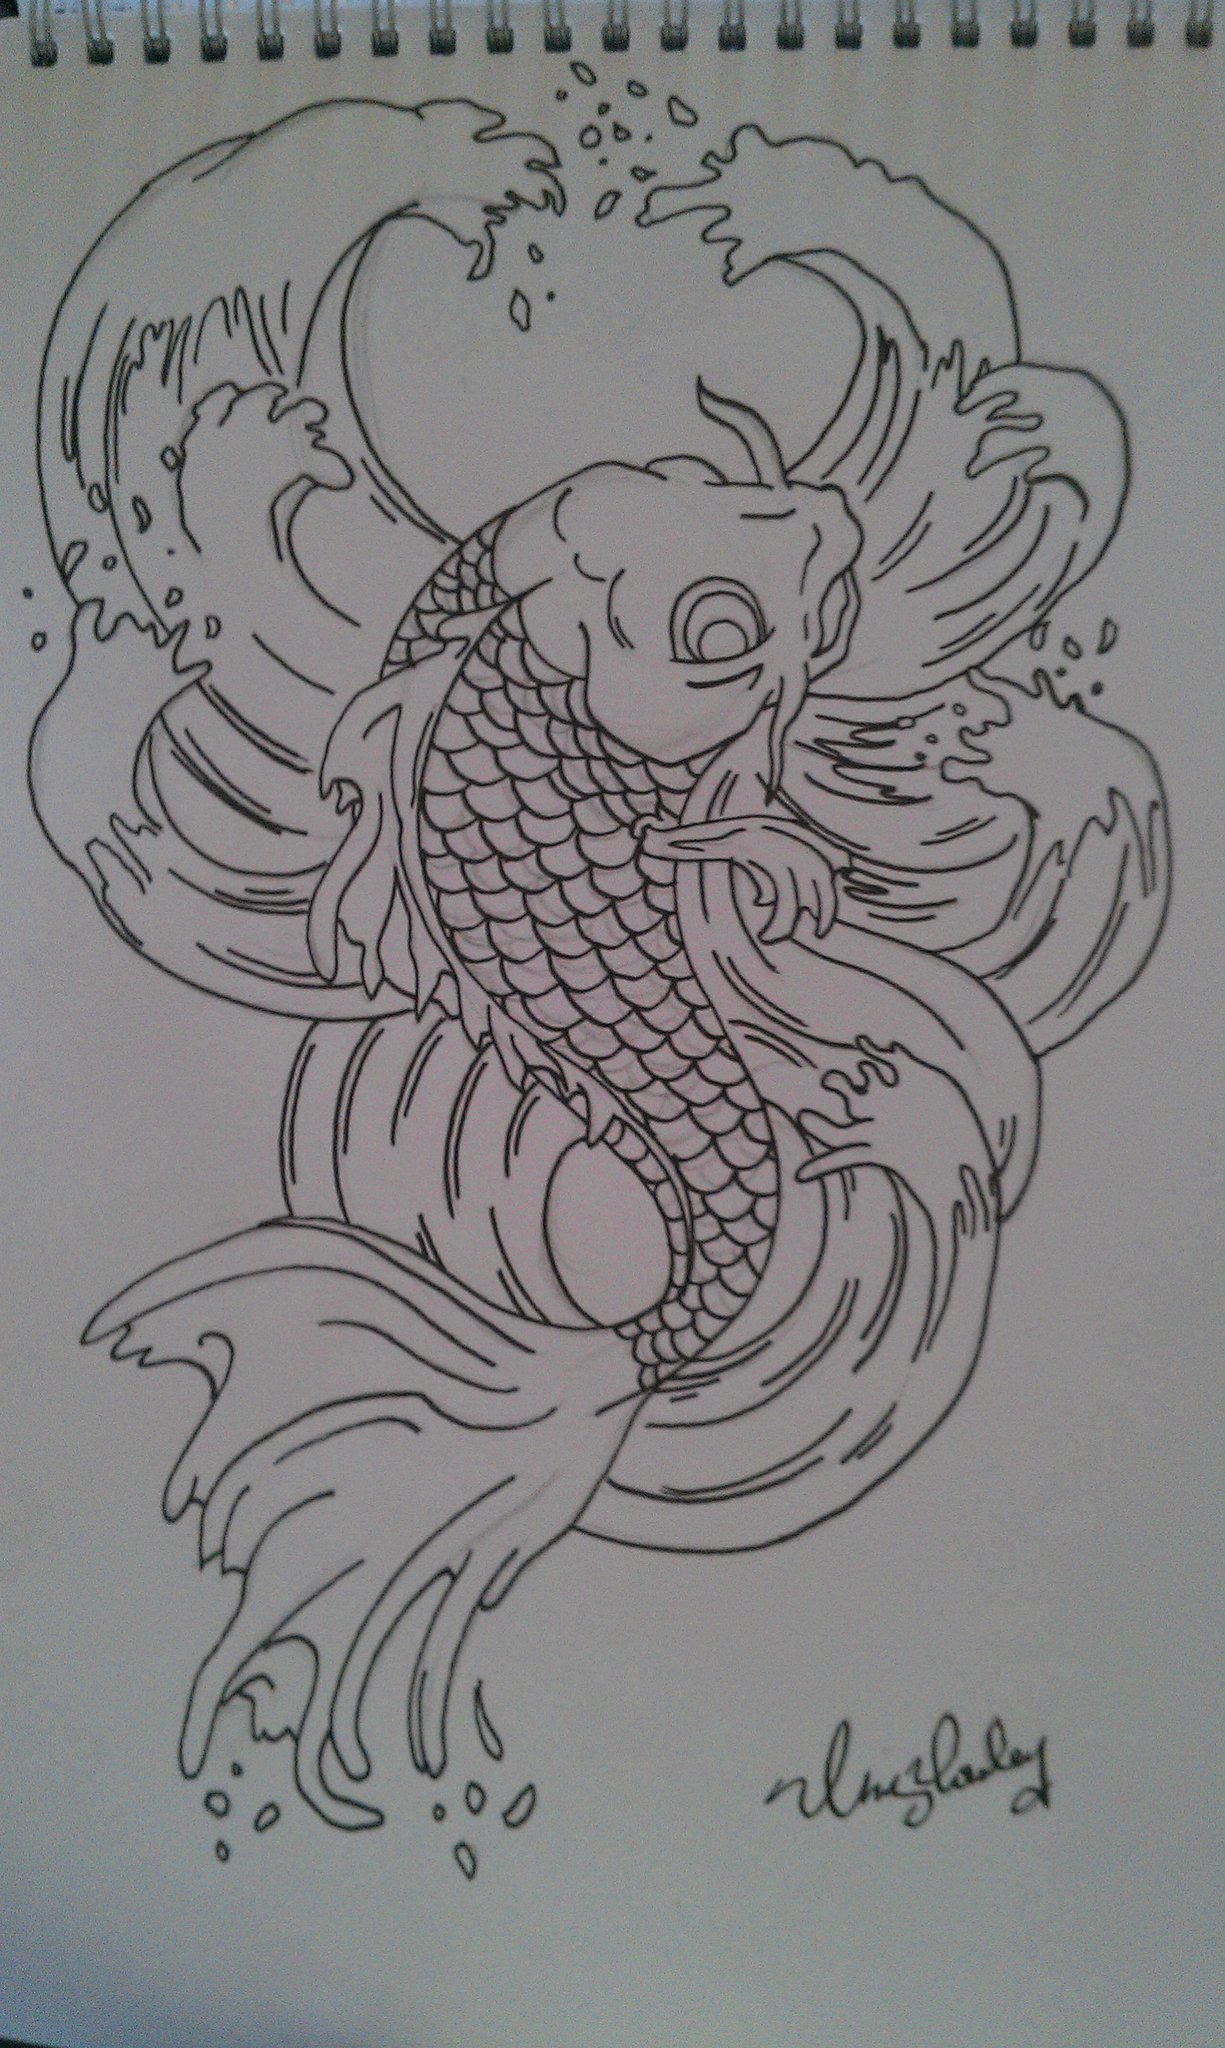 Koi Carp Tattoo Design By Chrisyrulz On Newgrounds